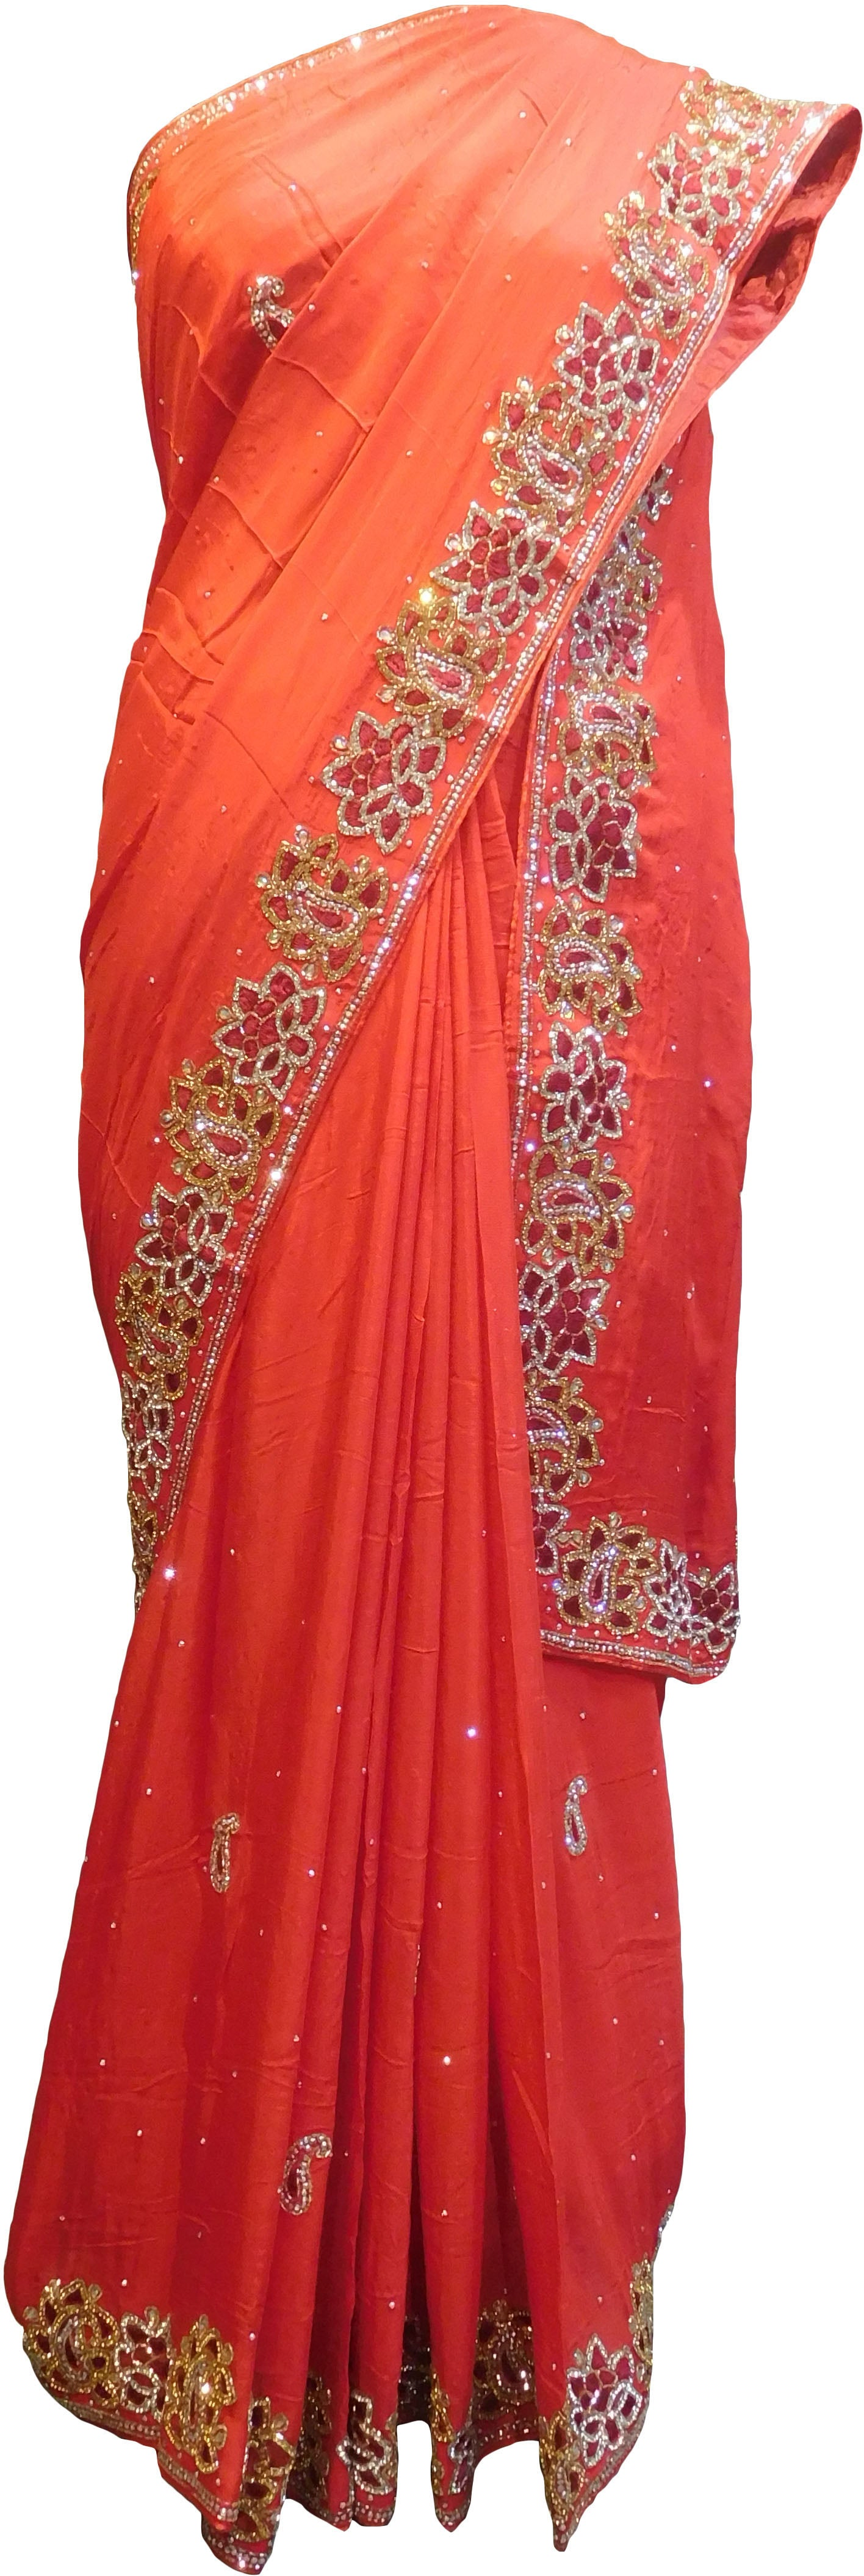 SMSAREE Red Designer Wedding Partywear Crepe (Chinon) Cutdana Thread & Stone Hand Embroidery Work Bridal Saree Sari With Blouse Piece F101